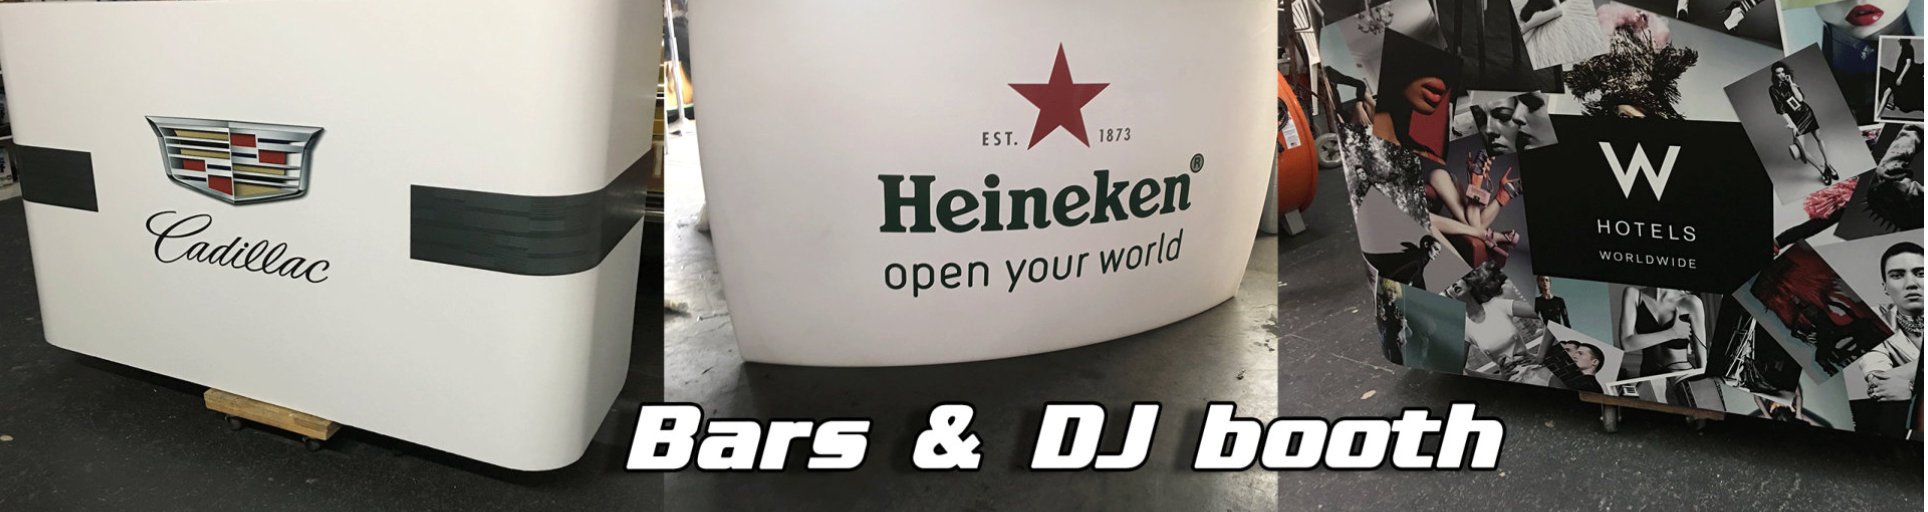 bars and DJ booth in wrap advertising